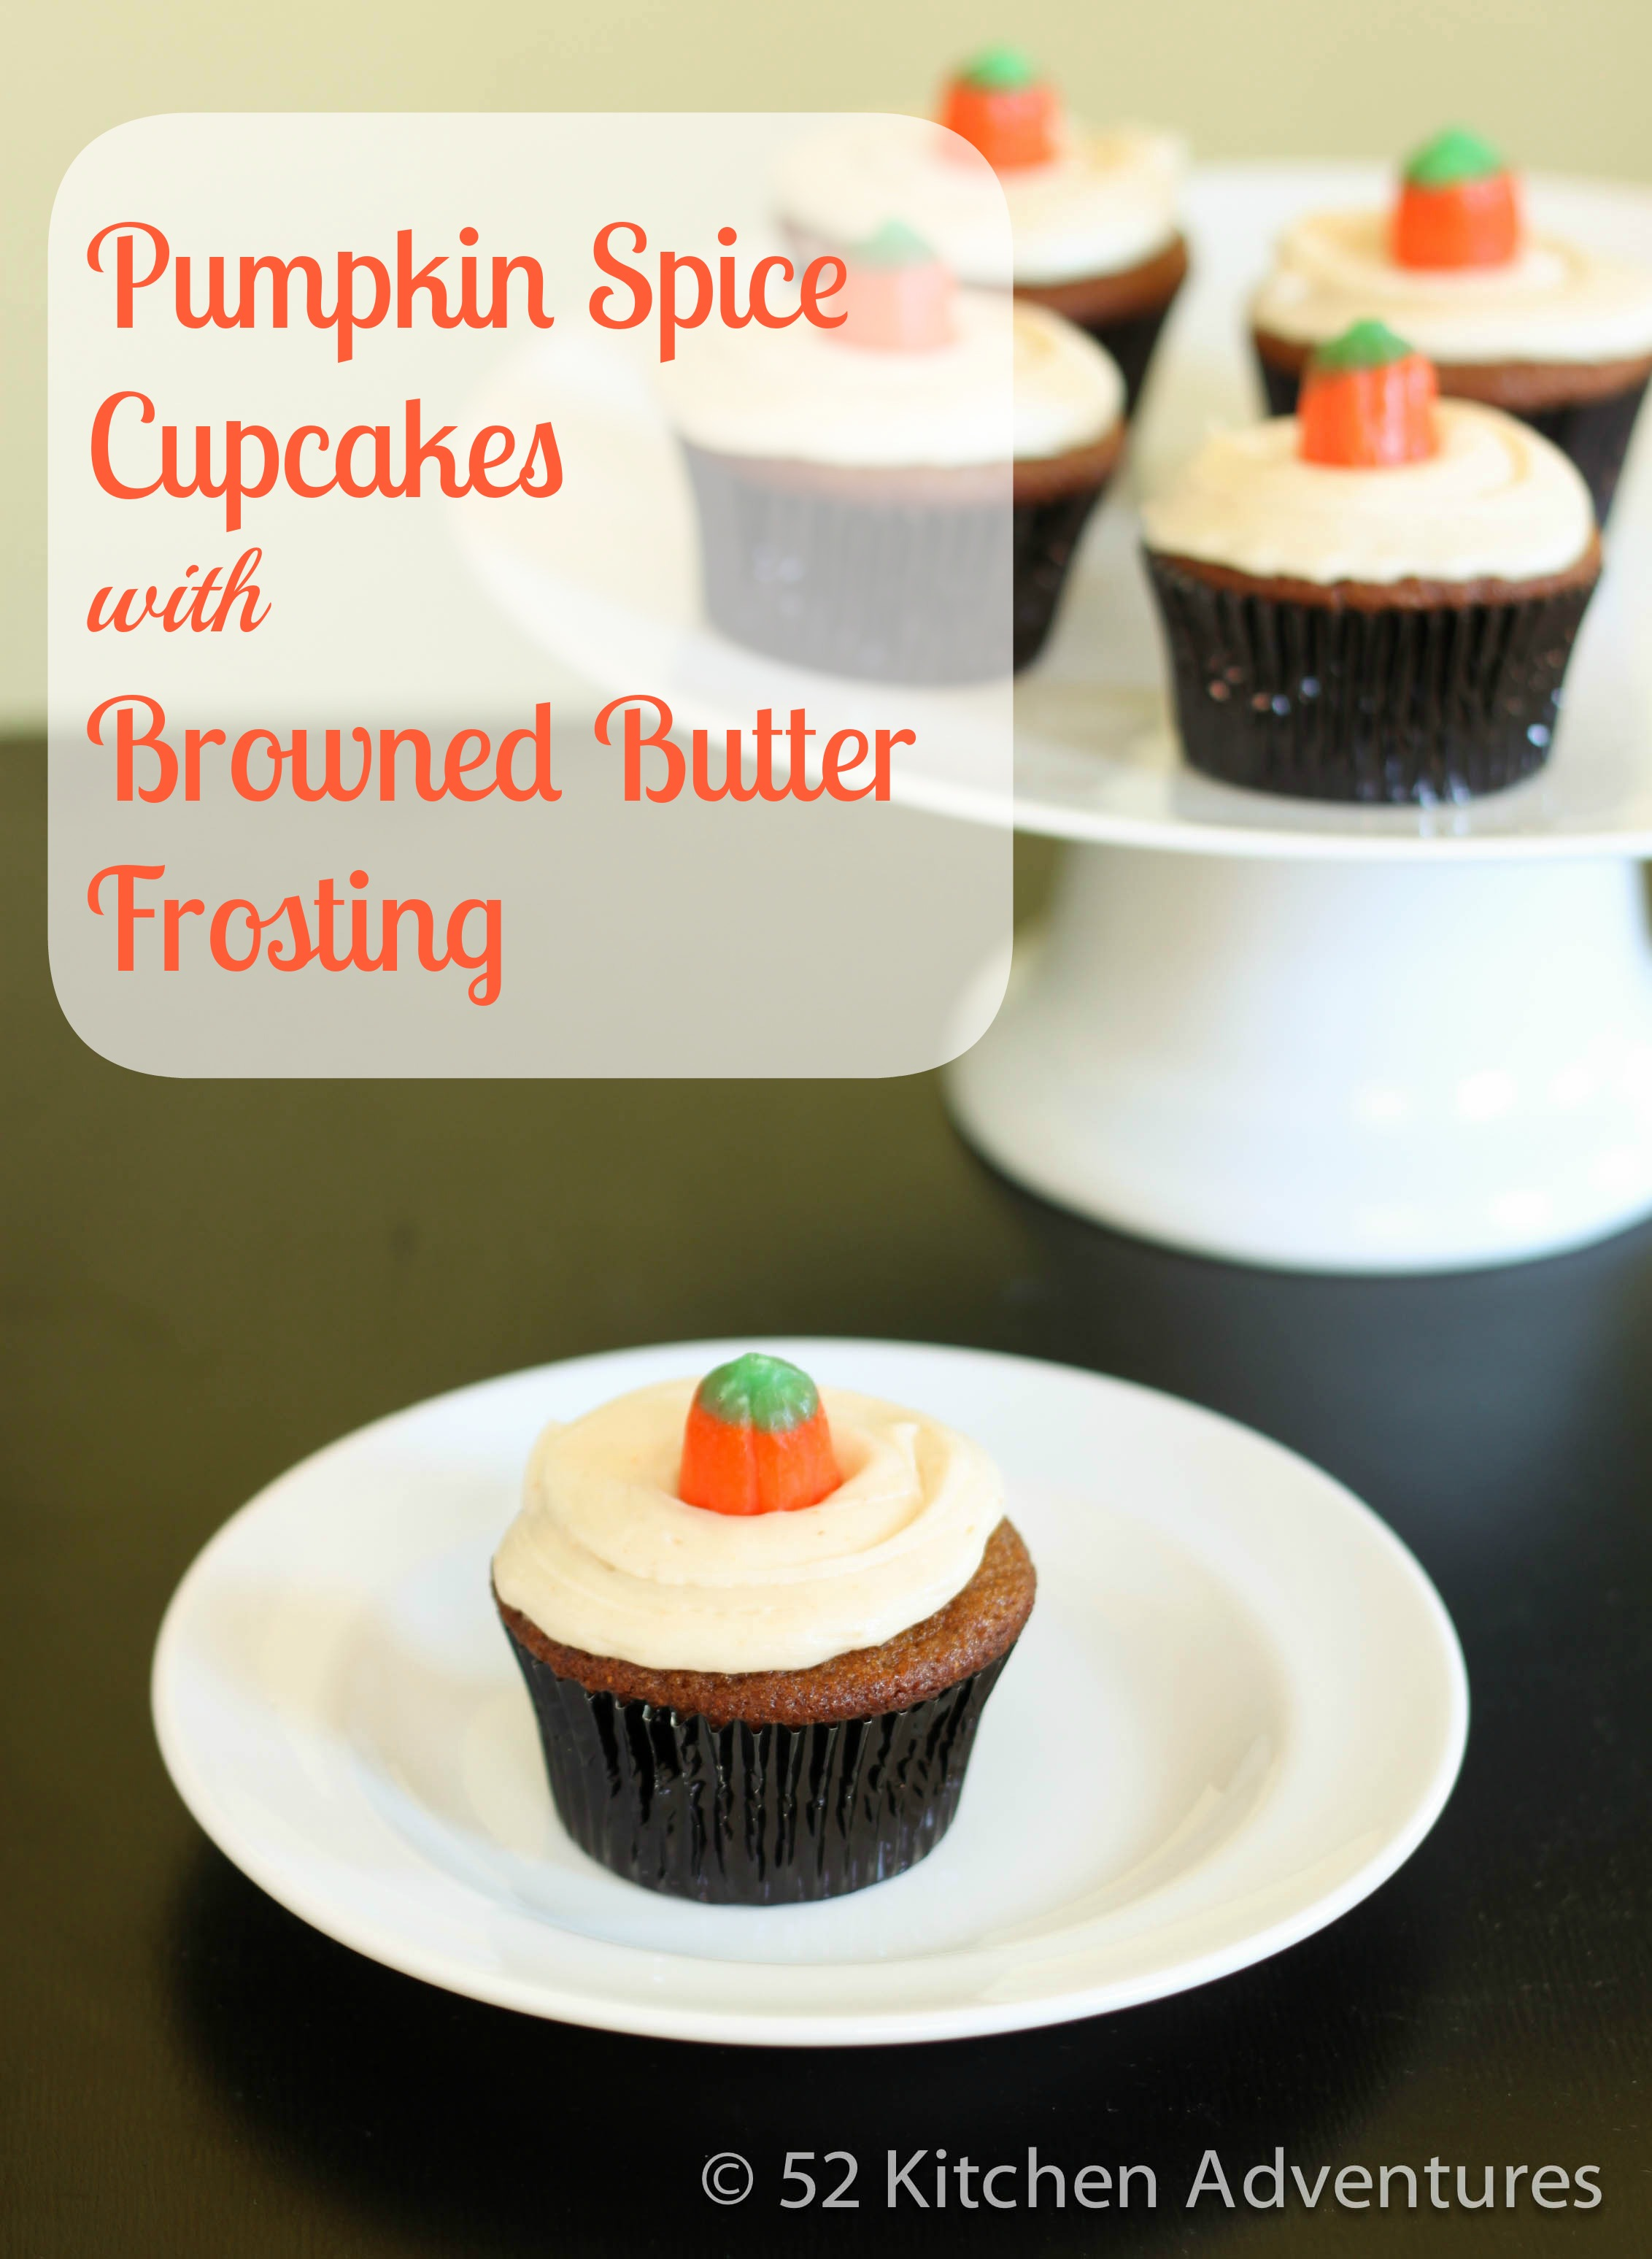 Recipe: Pumpkin spice cupcakes with browned butter frosting